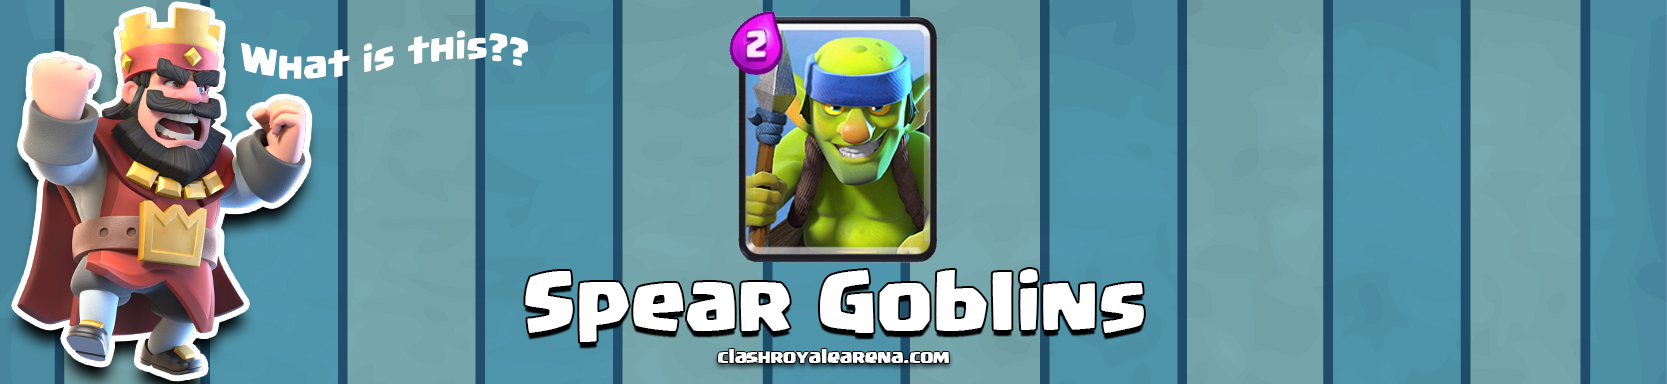 Spear Goblins in Clash Royale